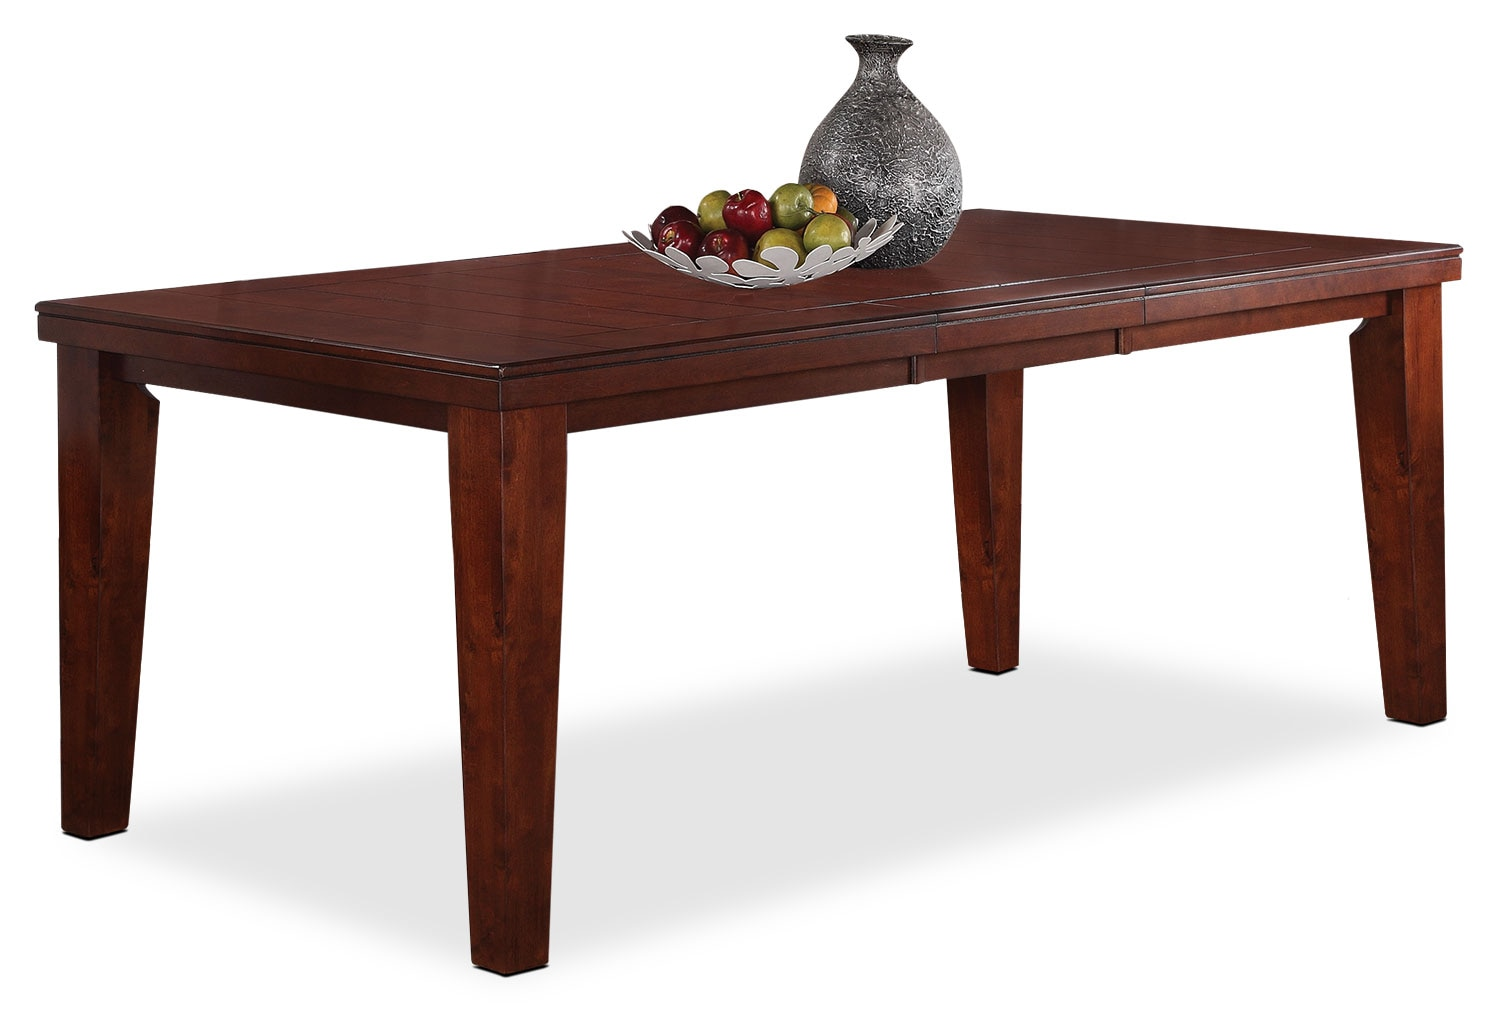 Dining Room Furniture - Chloe Dining Table